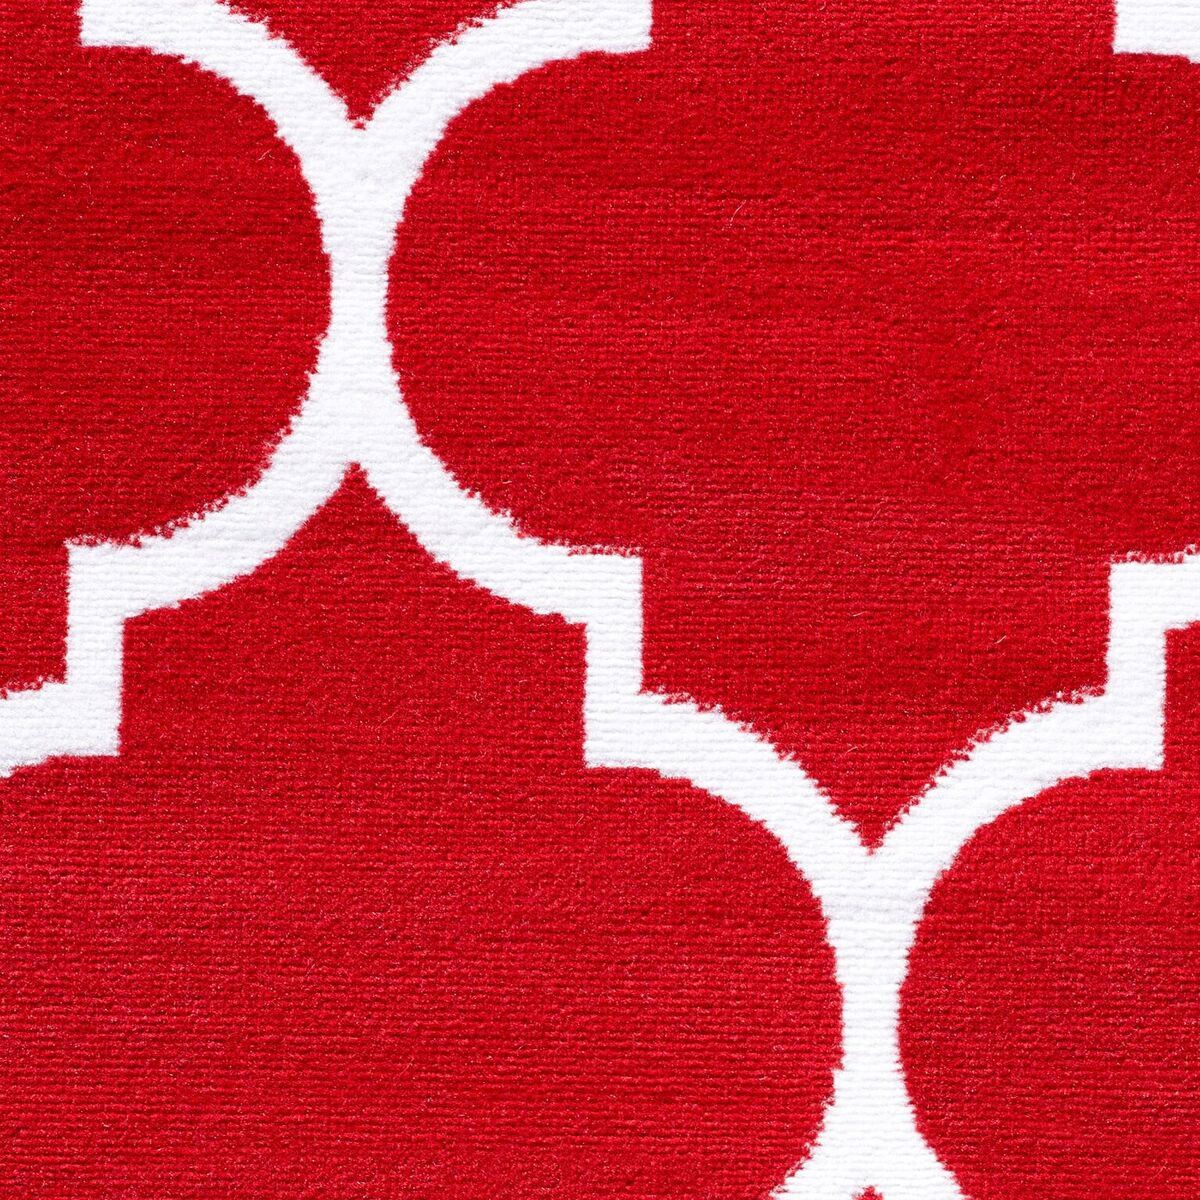 Normal Pile Modern Red Bedroom Area Rugs Soft Fluffy